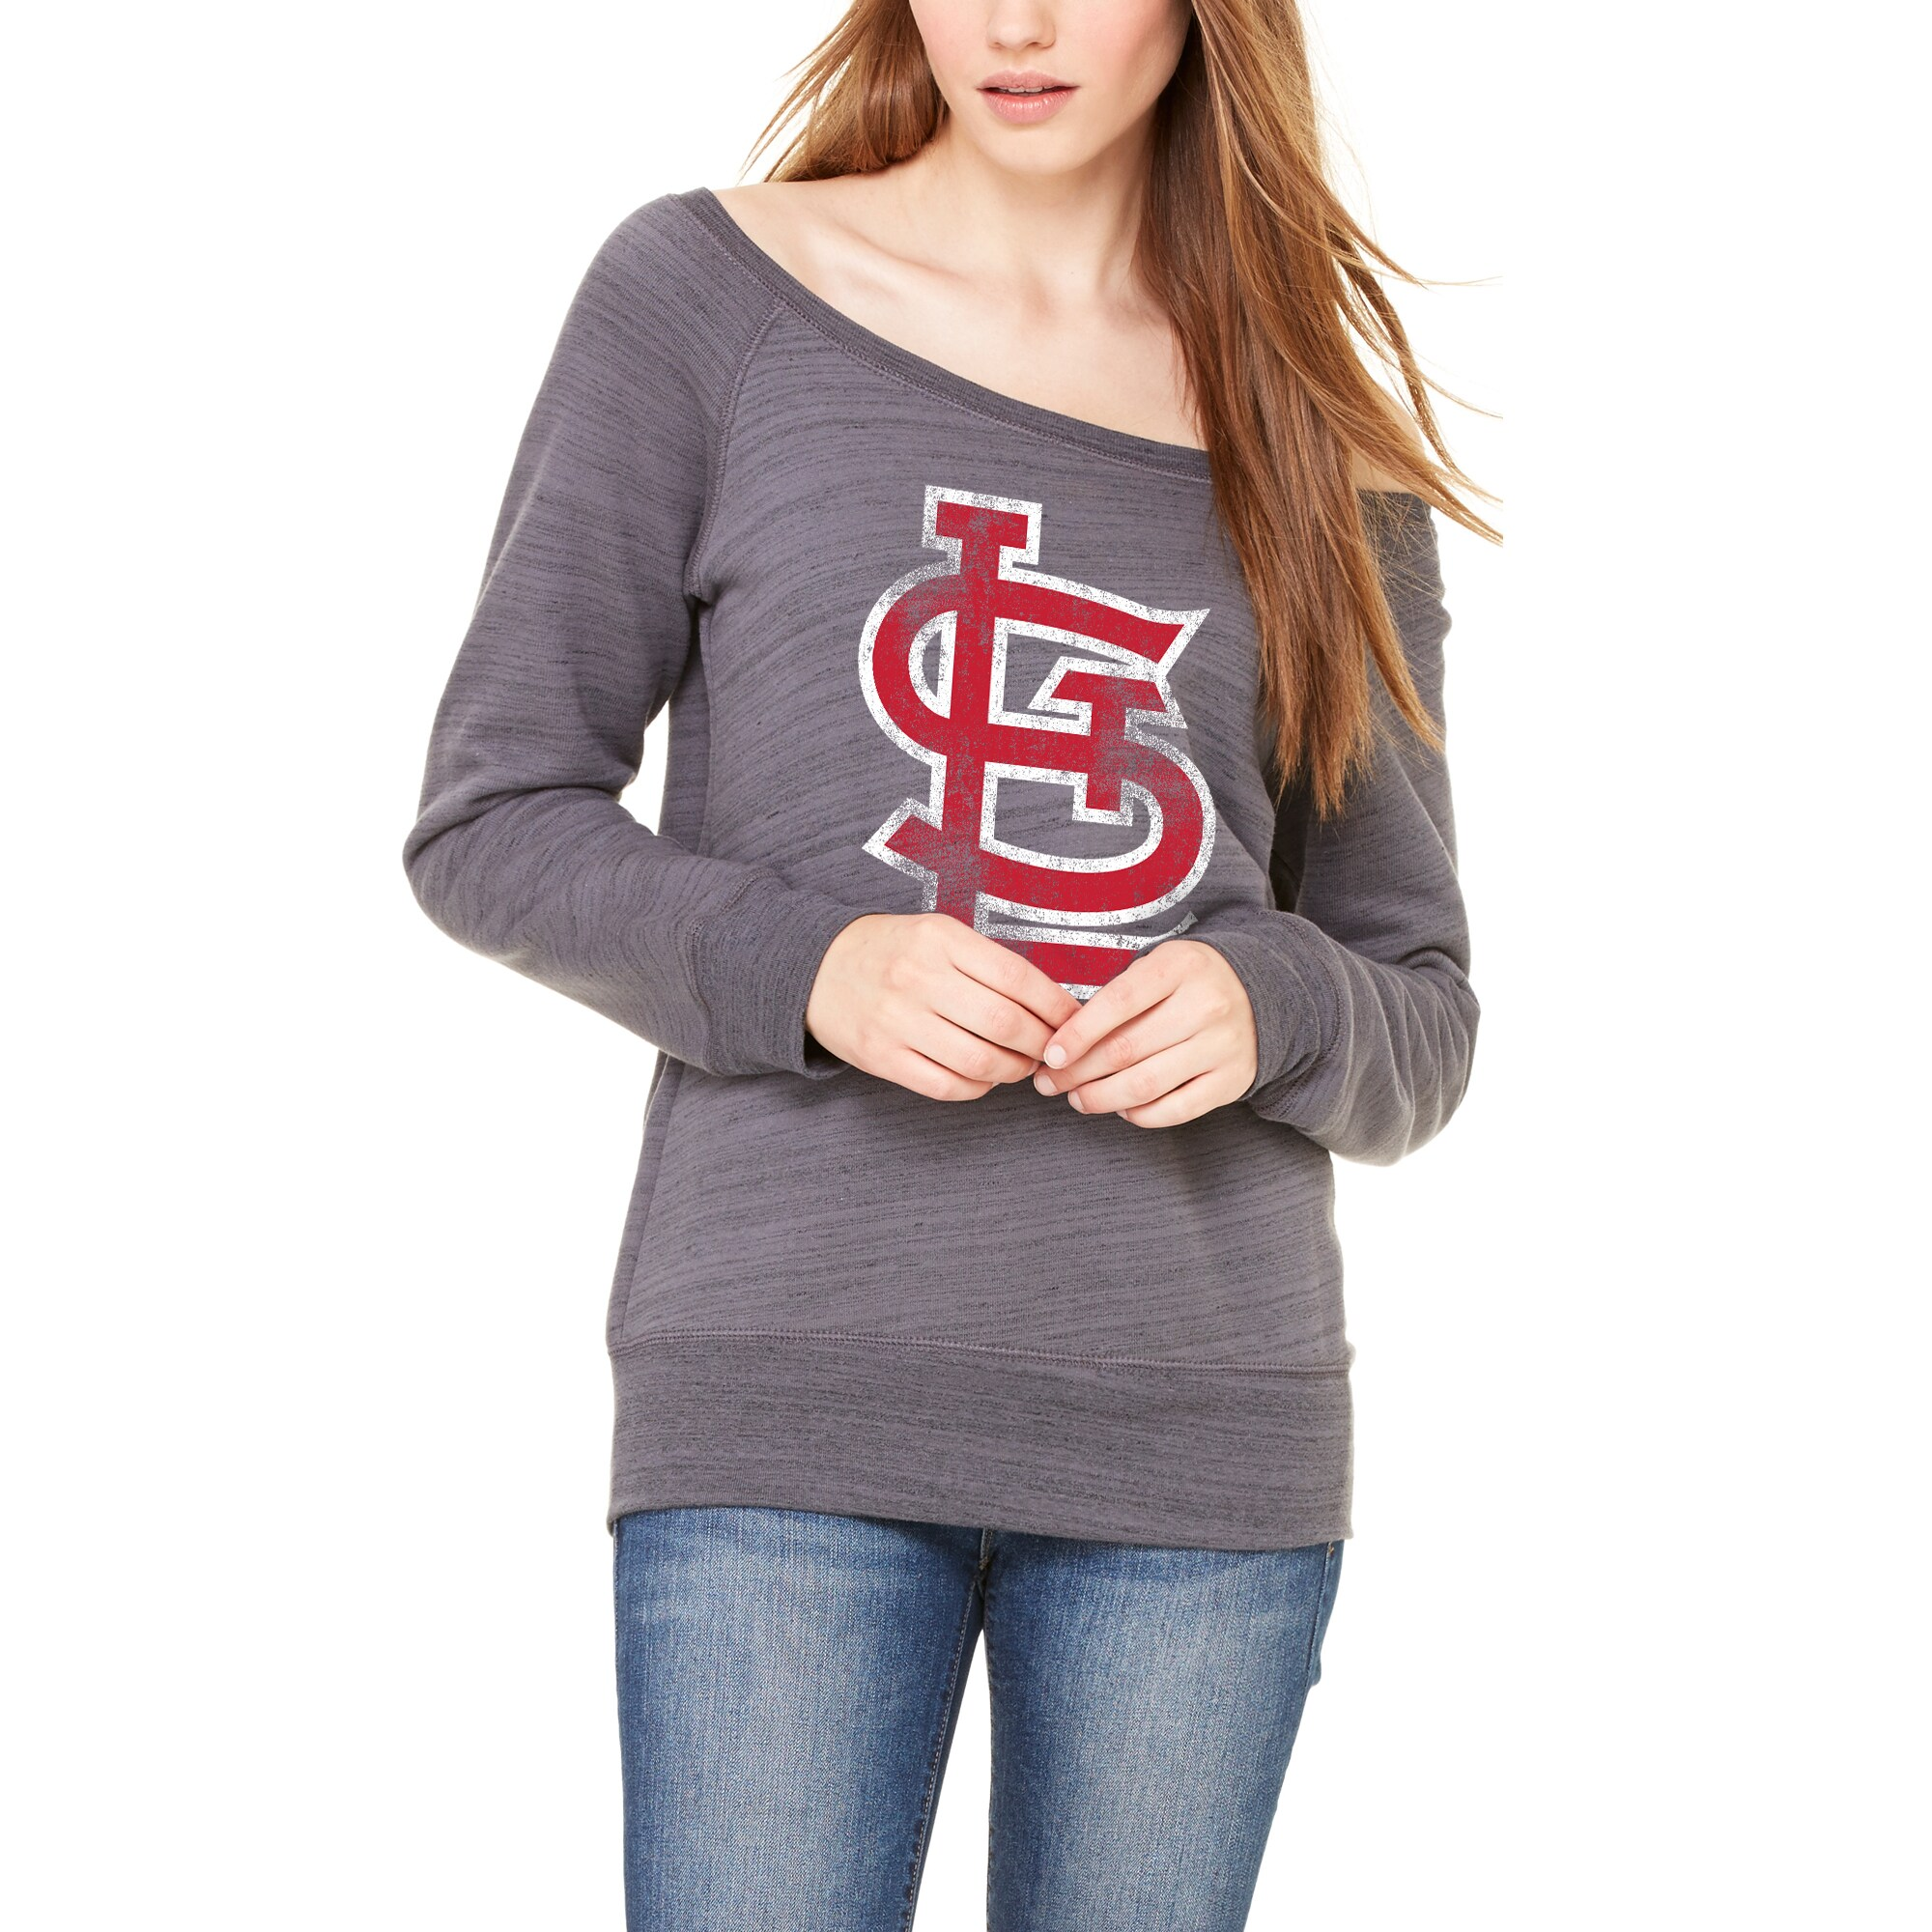 St. Louis Cardinals Let Loose by RNL Women's Game Day Wide Neck Sweatshirt - Dark Gray Marble